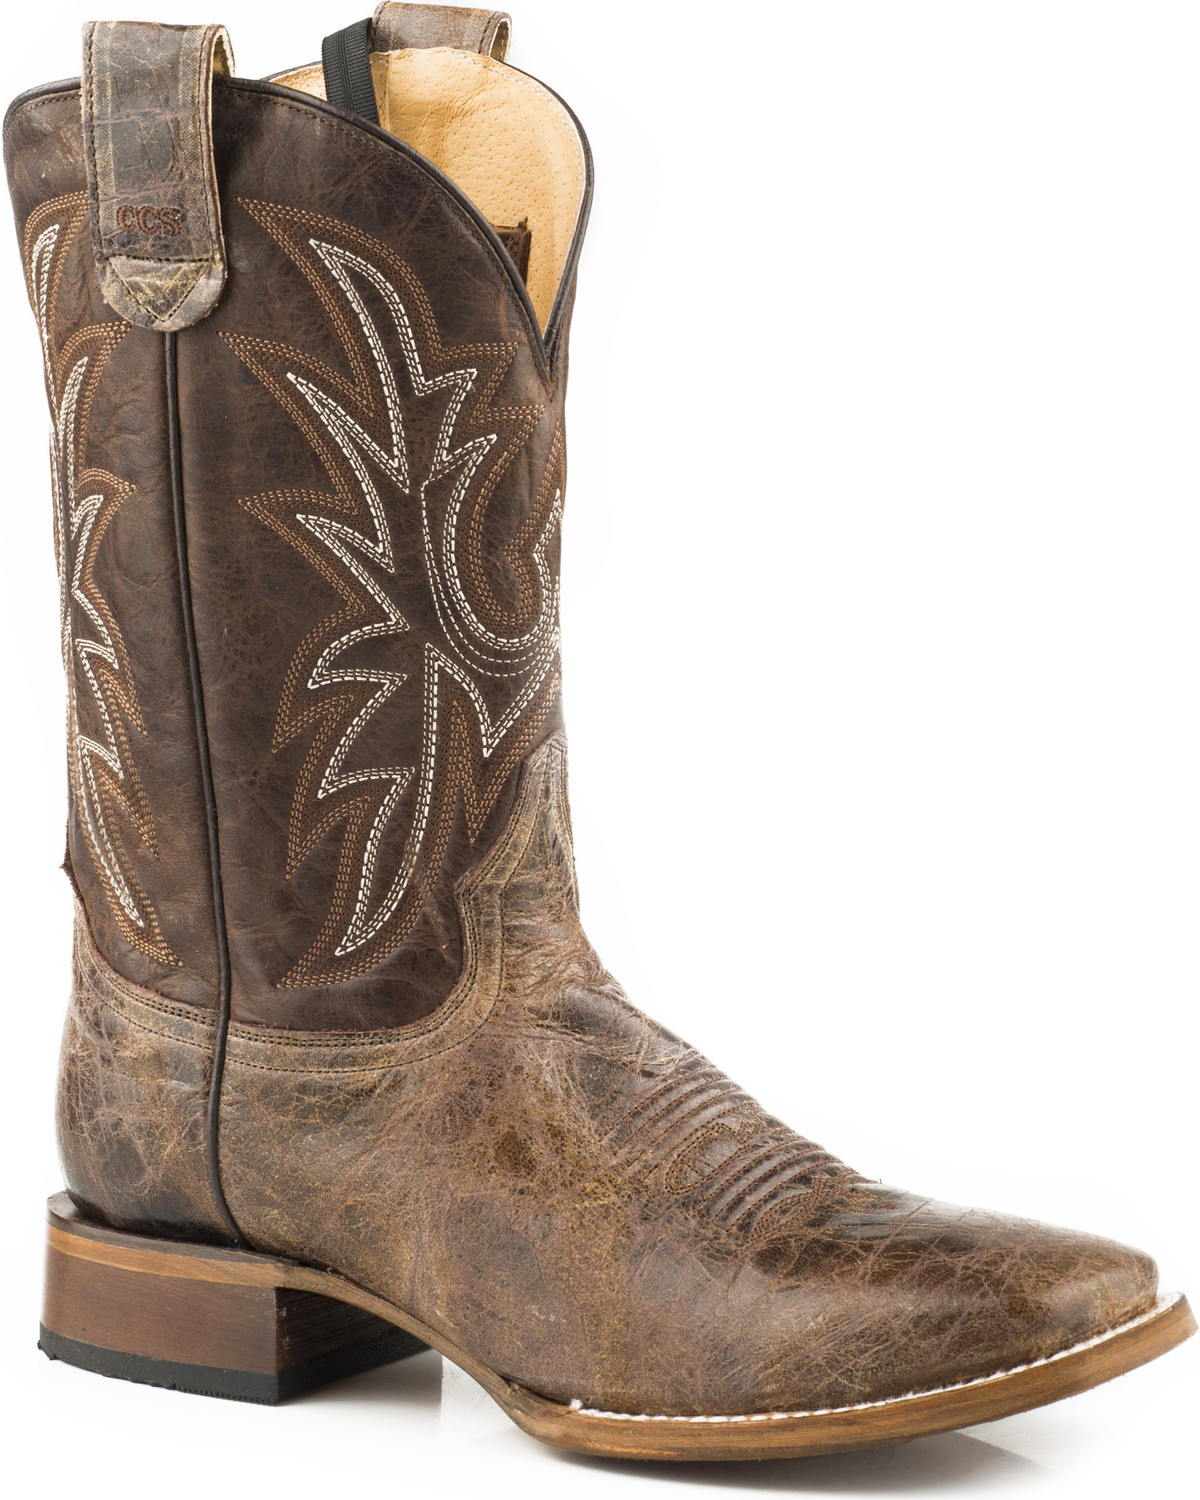 4b63d26308b Roper Men's Pierce Sidewinder Concealed Carry System Cowboy Boots - Square  Toe